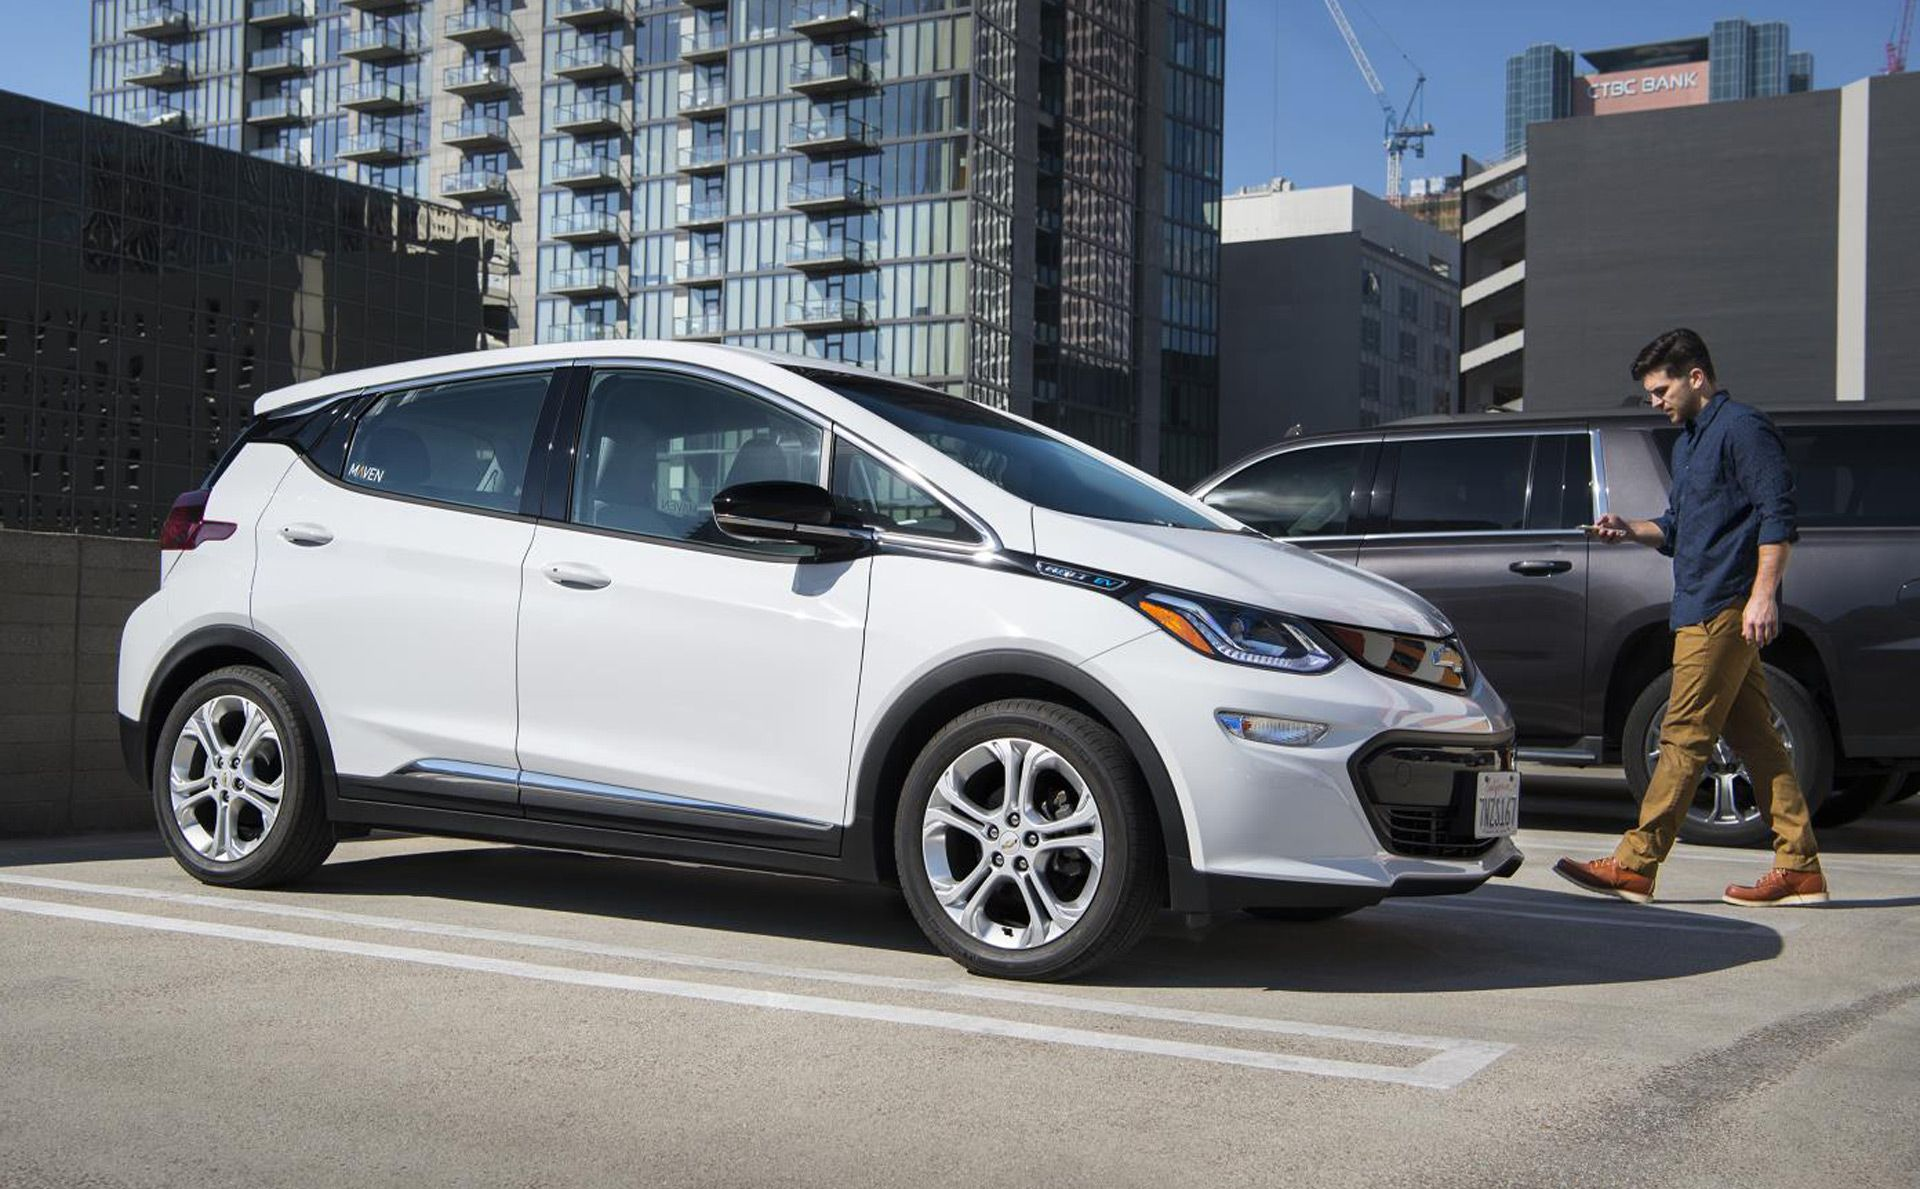 Plug In Electric Car Sales For May Best Bolt Ev Prime Months Yet Leaf Volt Rise Too Final Update Chevy Bolt Car Sharing Car